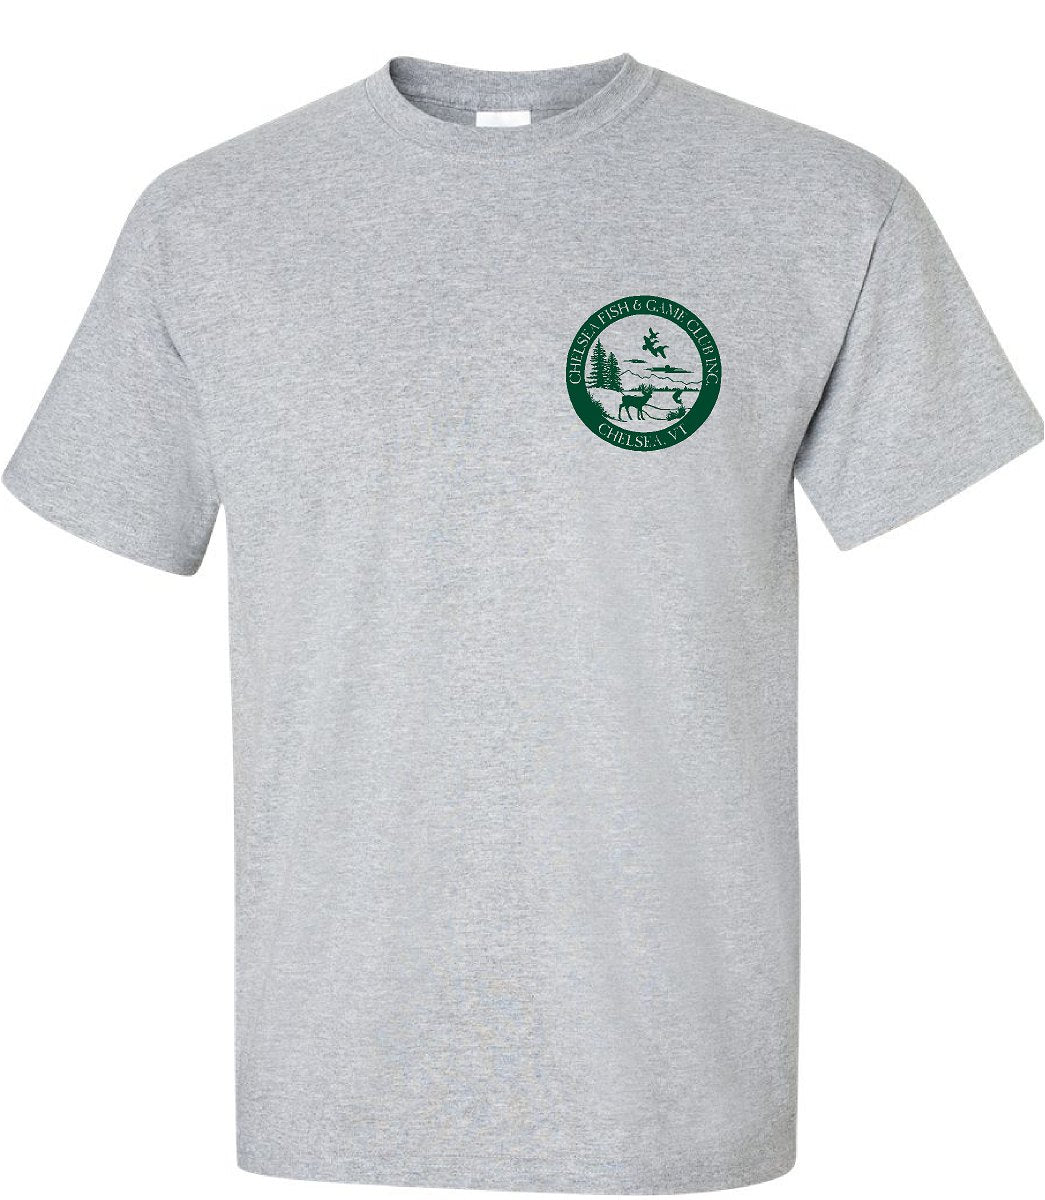 CHELSEA, VT FISH & GAME SHORT SLEEVE TEE, ROUND LOGO, left chest only, in youth & adult sizes